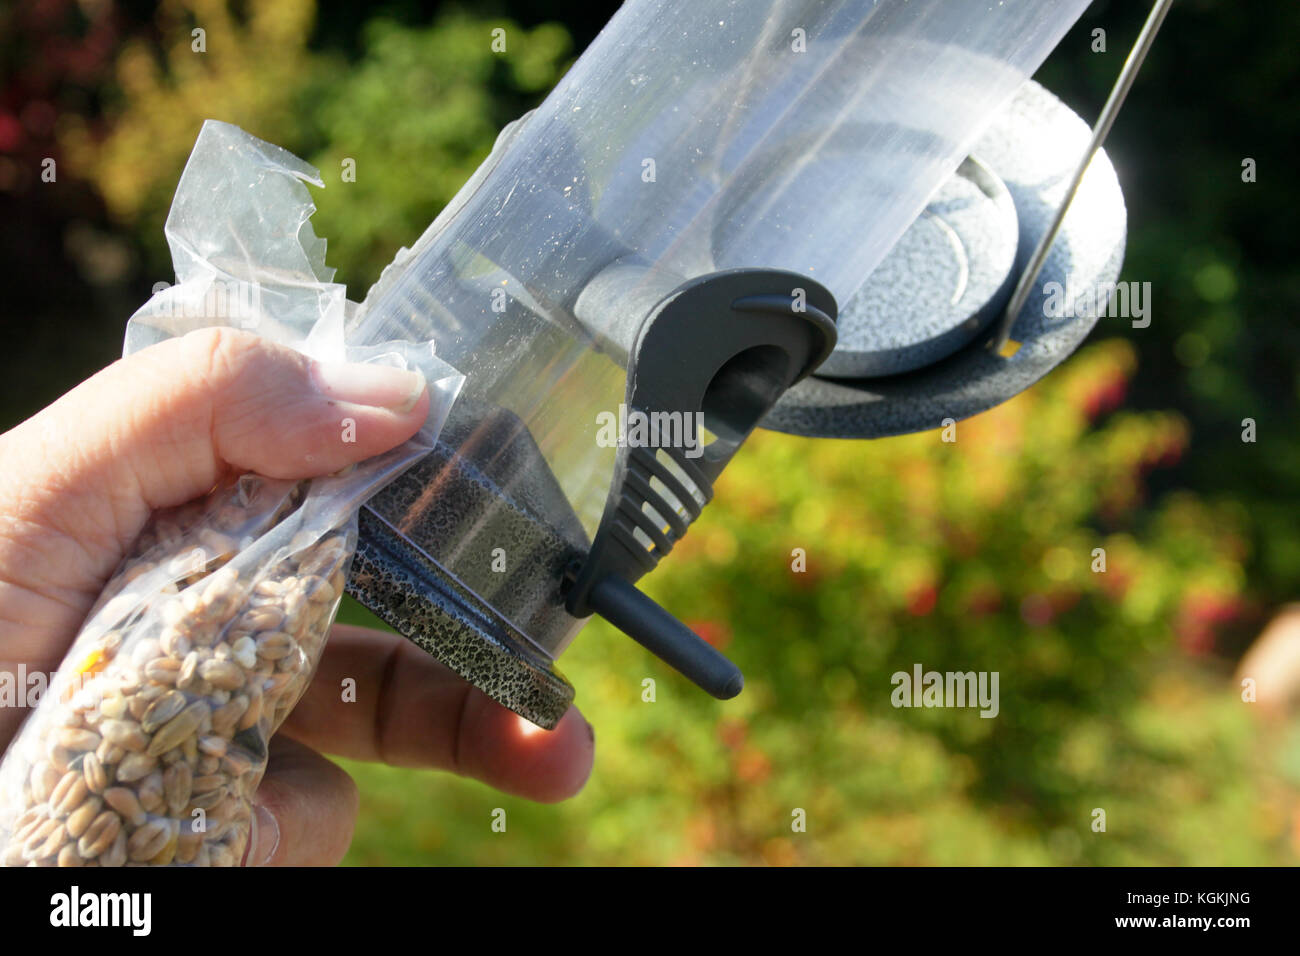 hanging up and filling a new clean bird feeder in an English garden at the beginning of autumn. - Stock Image